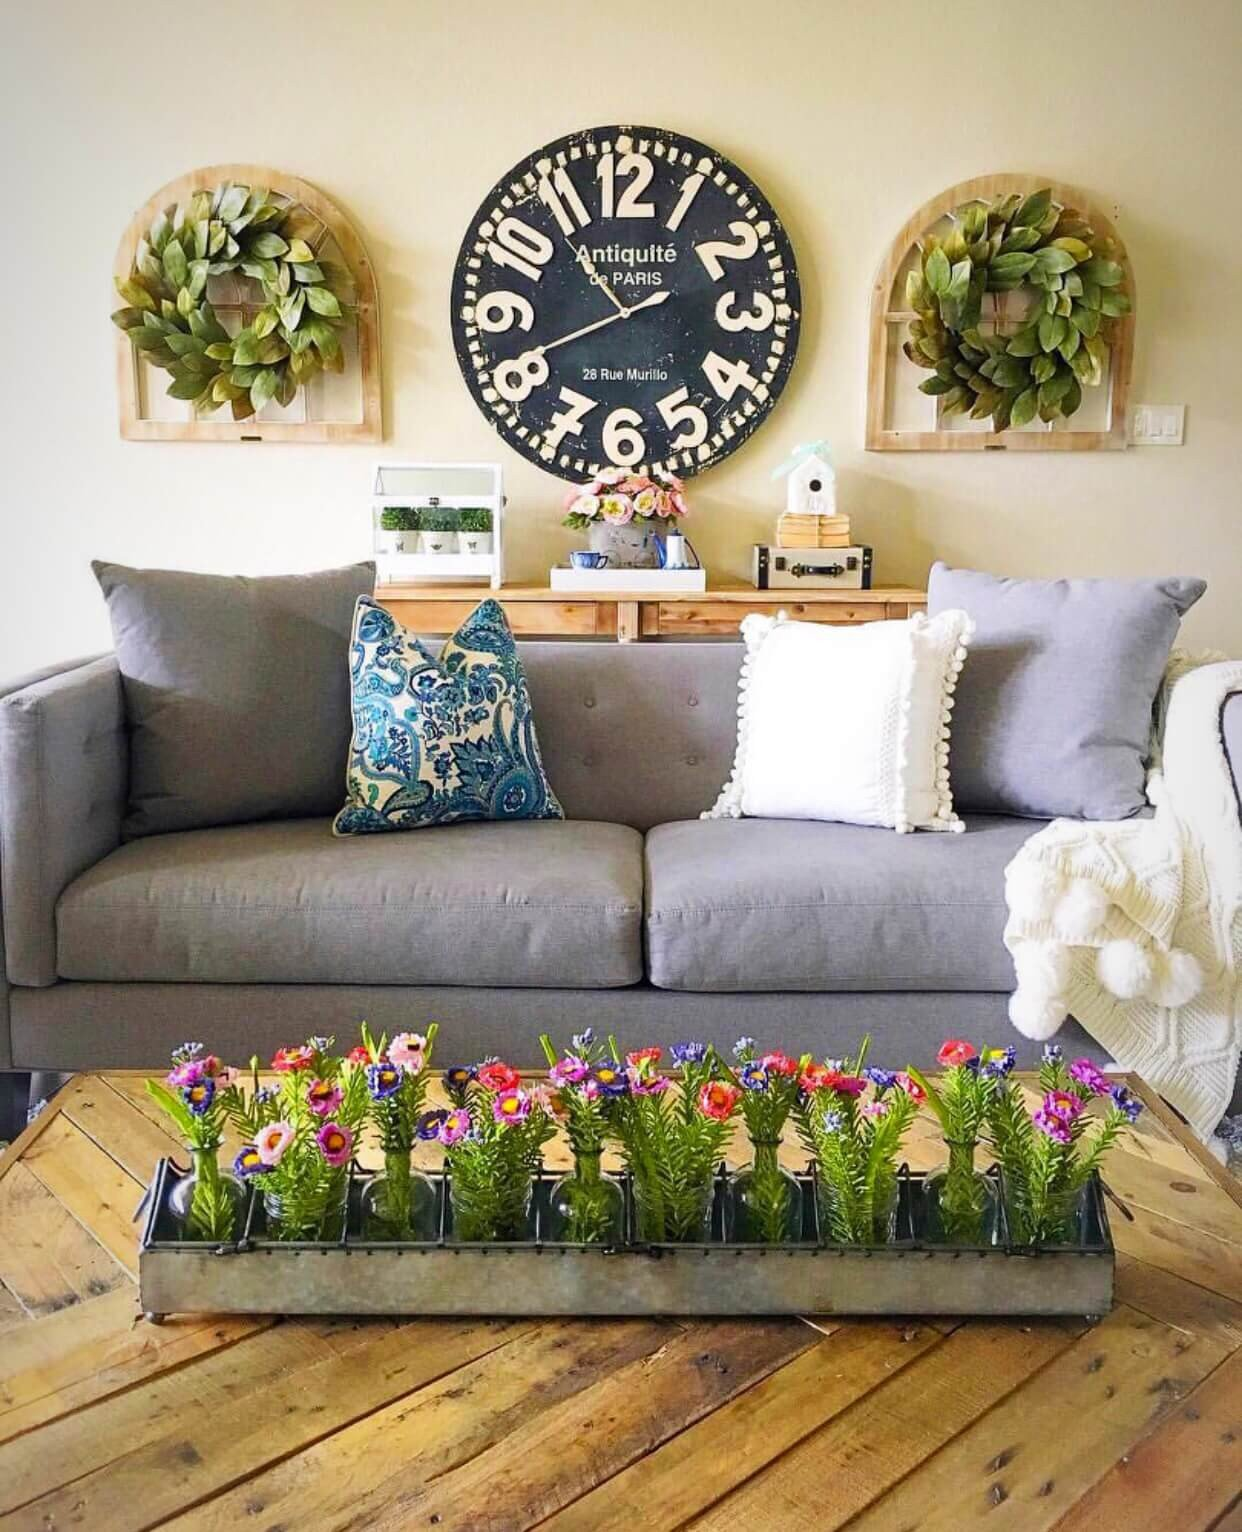 Living Room Wall Decorating Ideas 33 Best Rustic Living Room Wall Decor Ideas and Designs